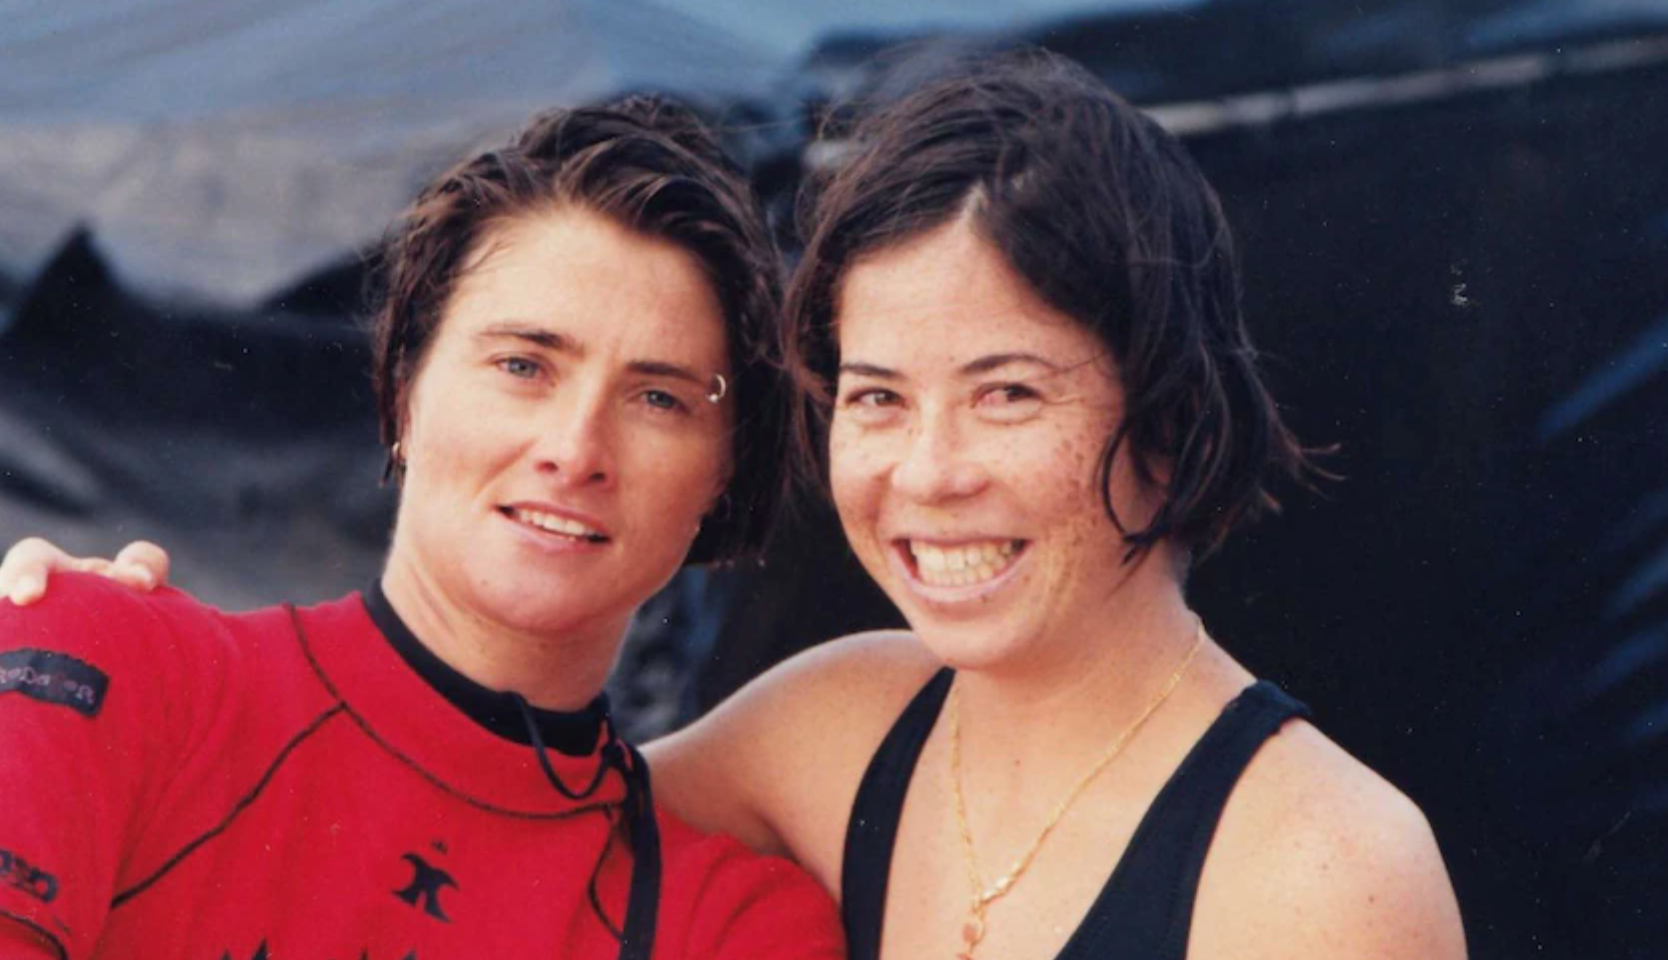 Jodie Cooper and Pauline Menczer took different paths to the top, but faced the same macho surfing culture